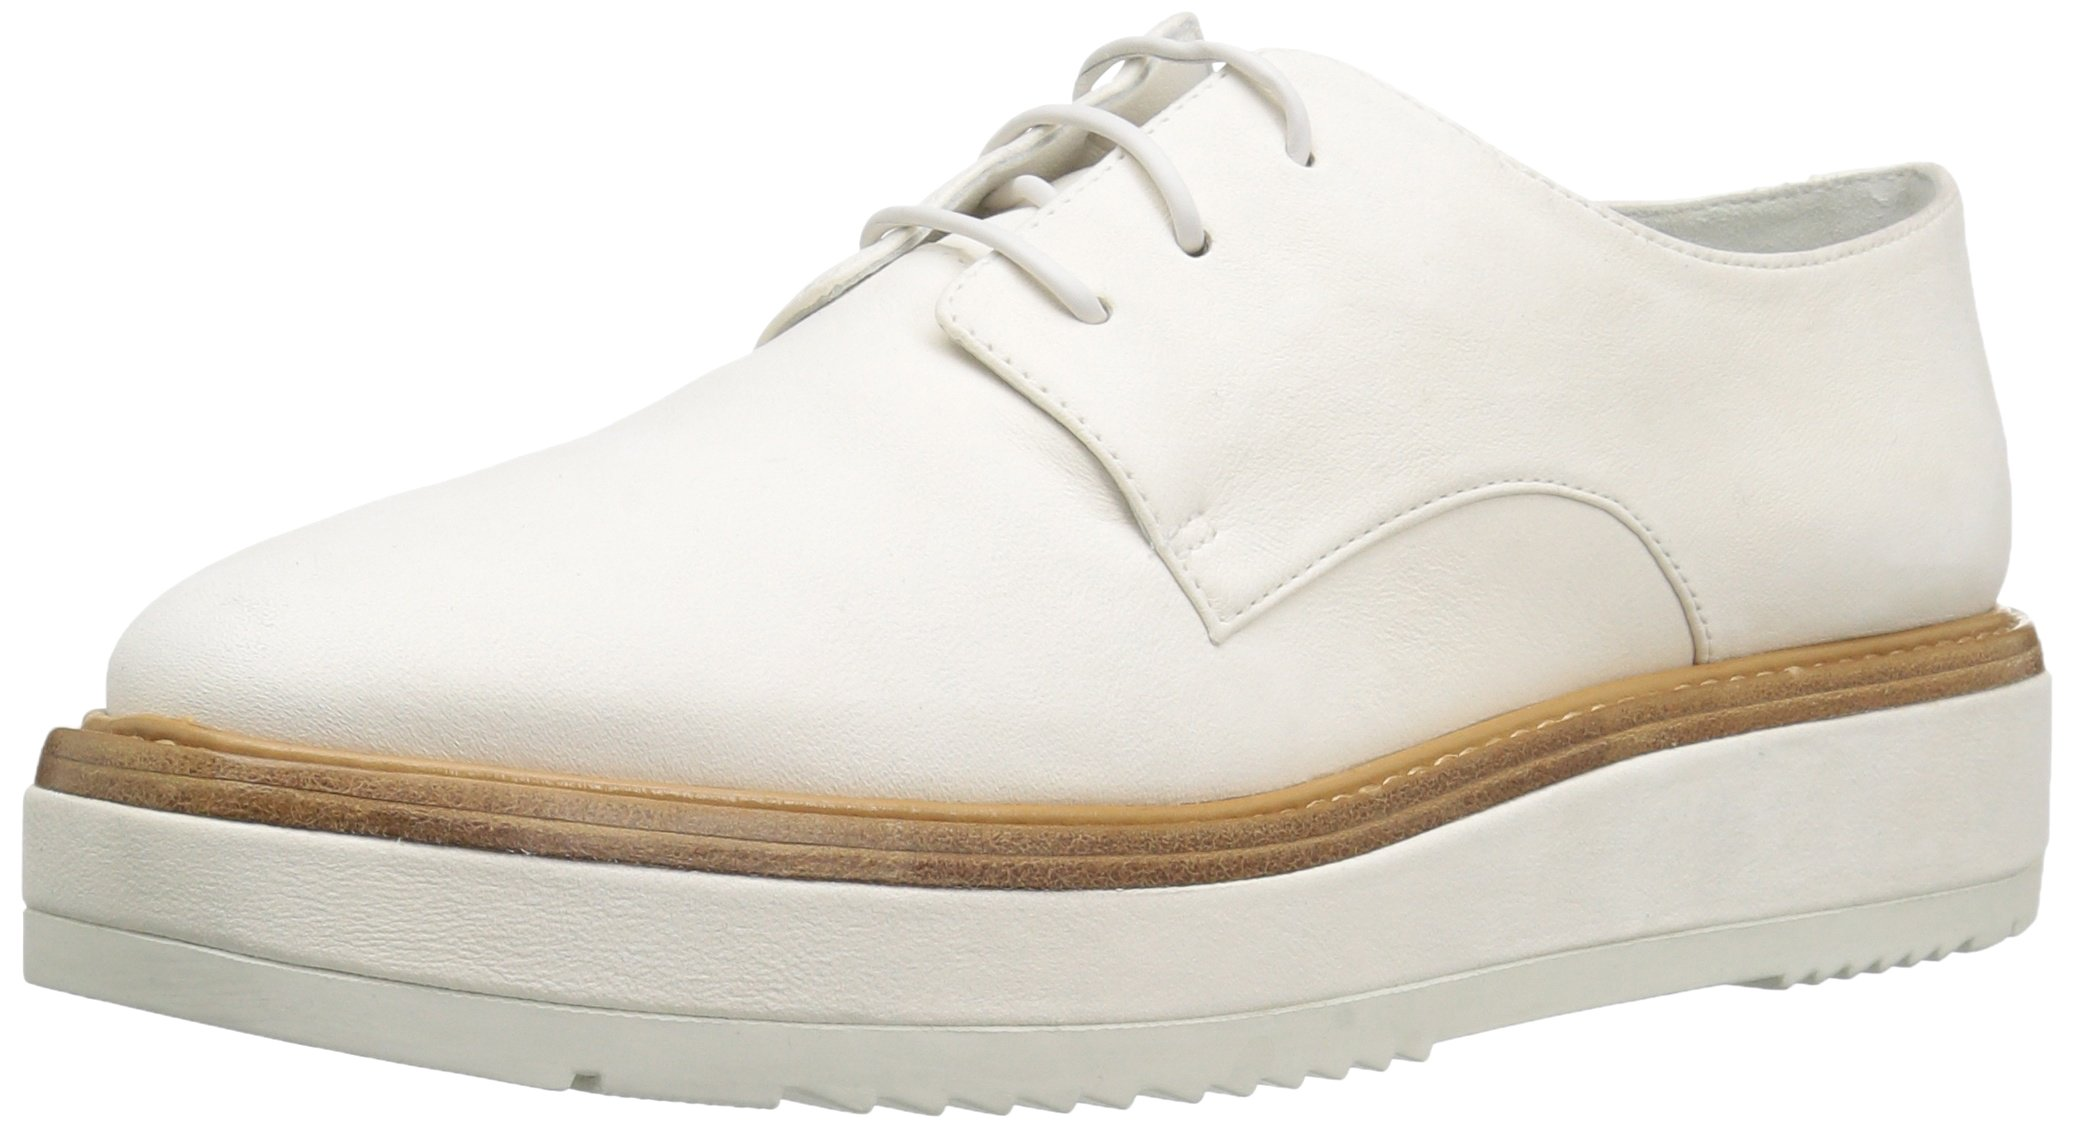 Vince Women's Tanner Leather Oxford, White, 9.5 M US